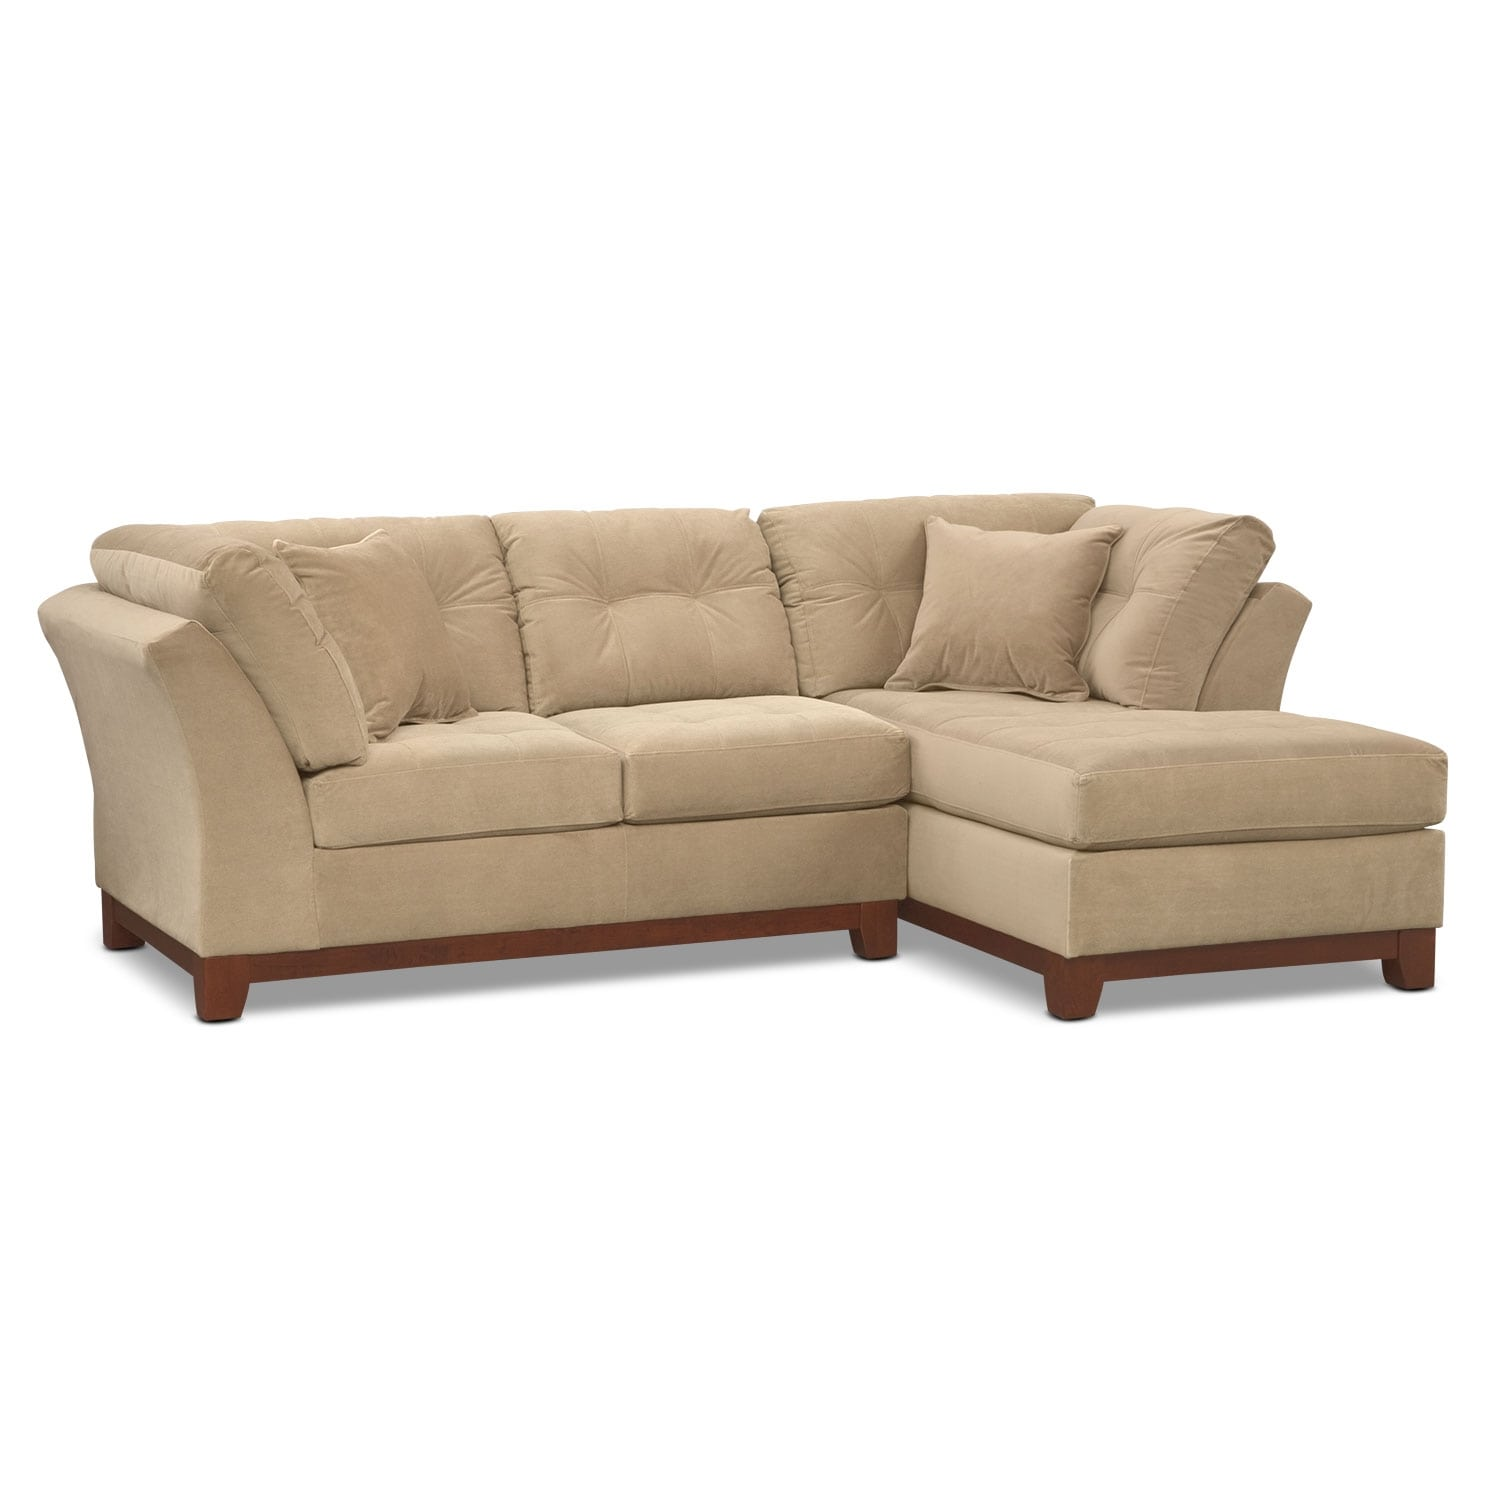 Solace Cocoa II 2 Pc. Sectional (Alternate Reverse)